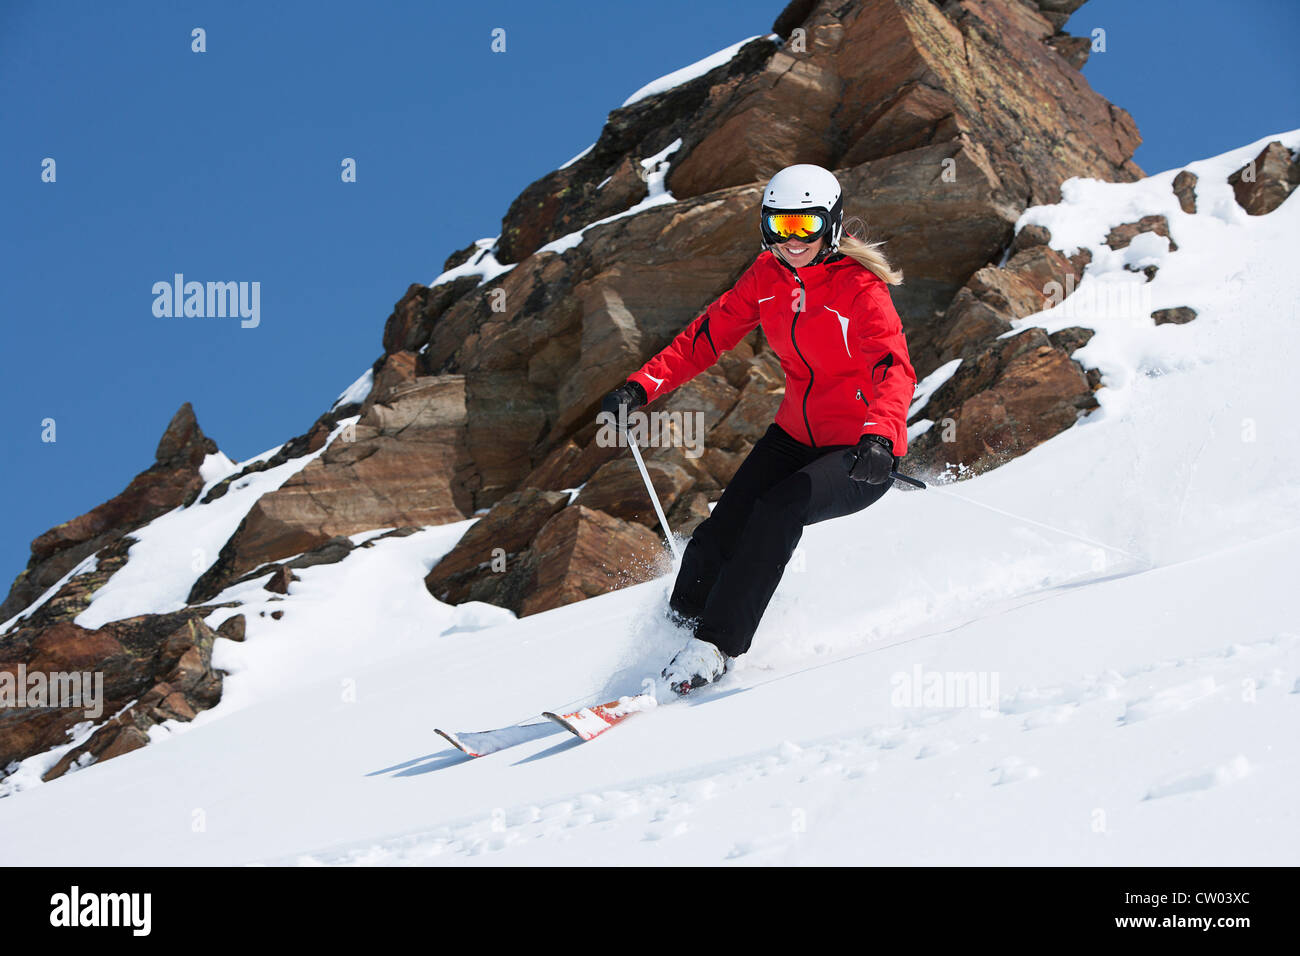 Cabotage skieur on snowy slope Photo Stock